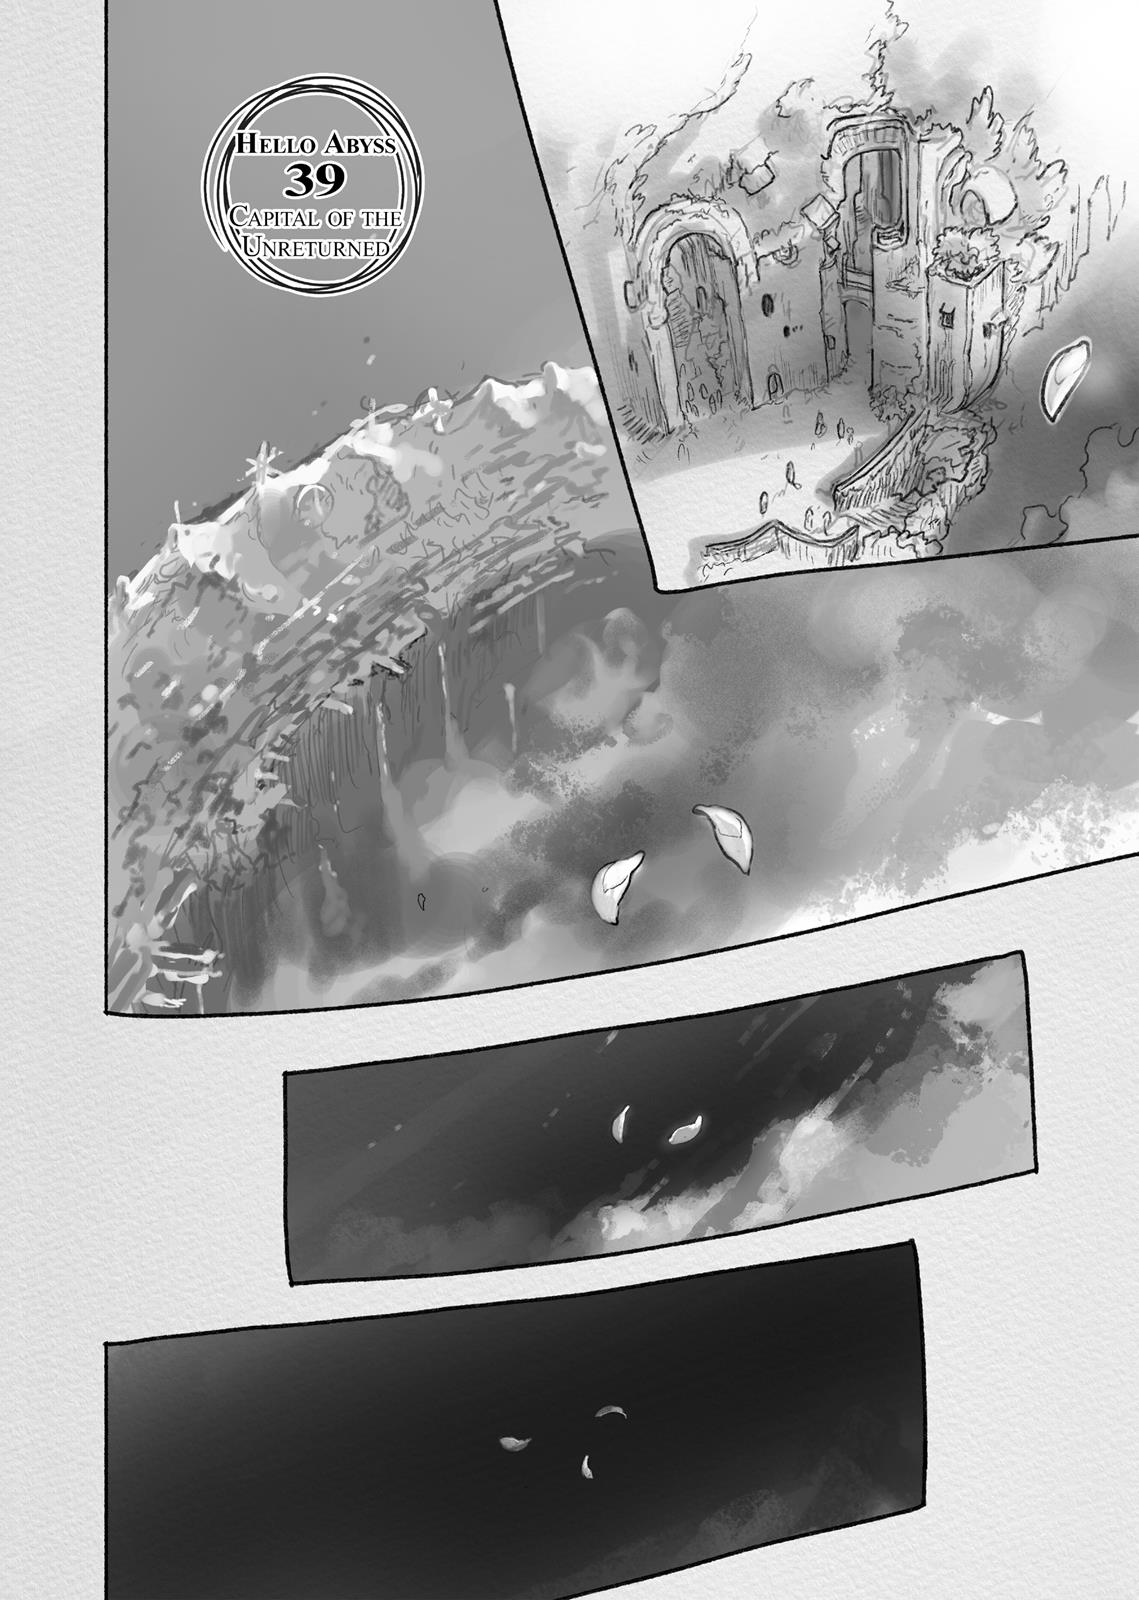 Made In Abyss, Chapter Hello,Abyss 39 image 001